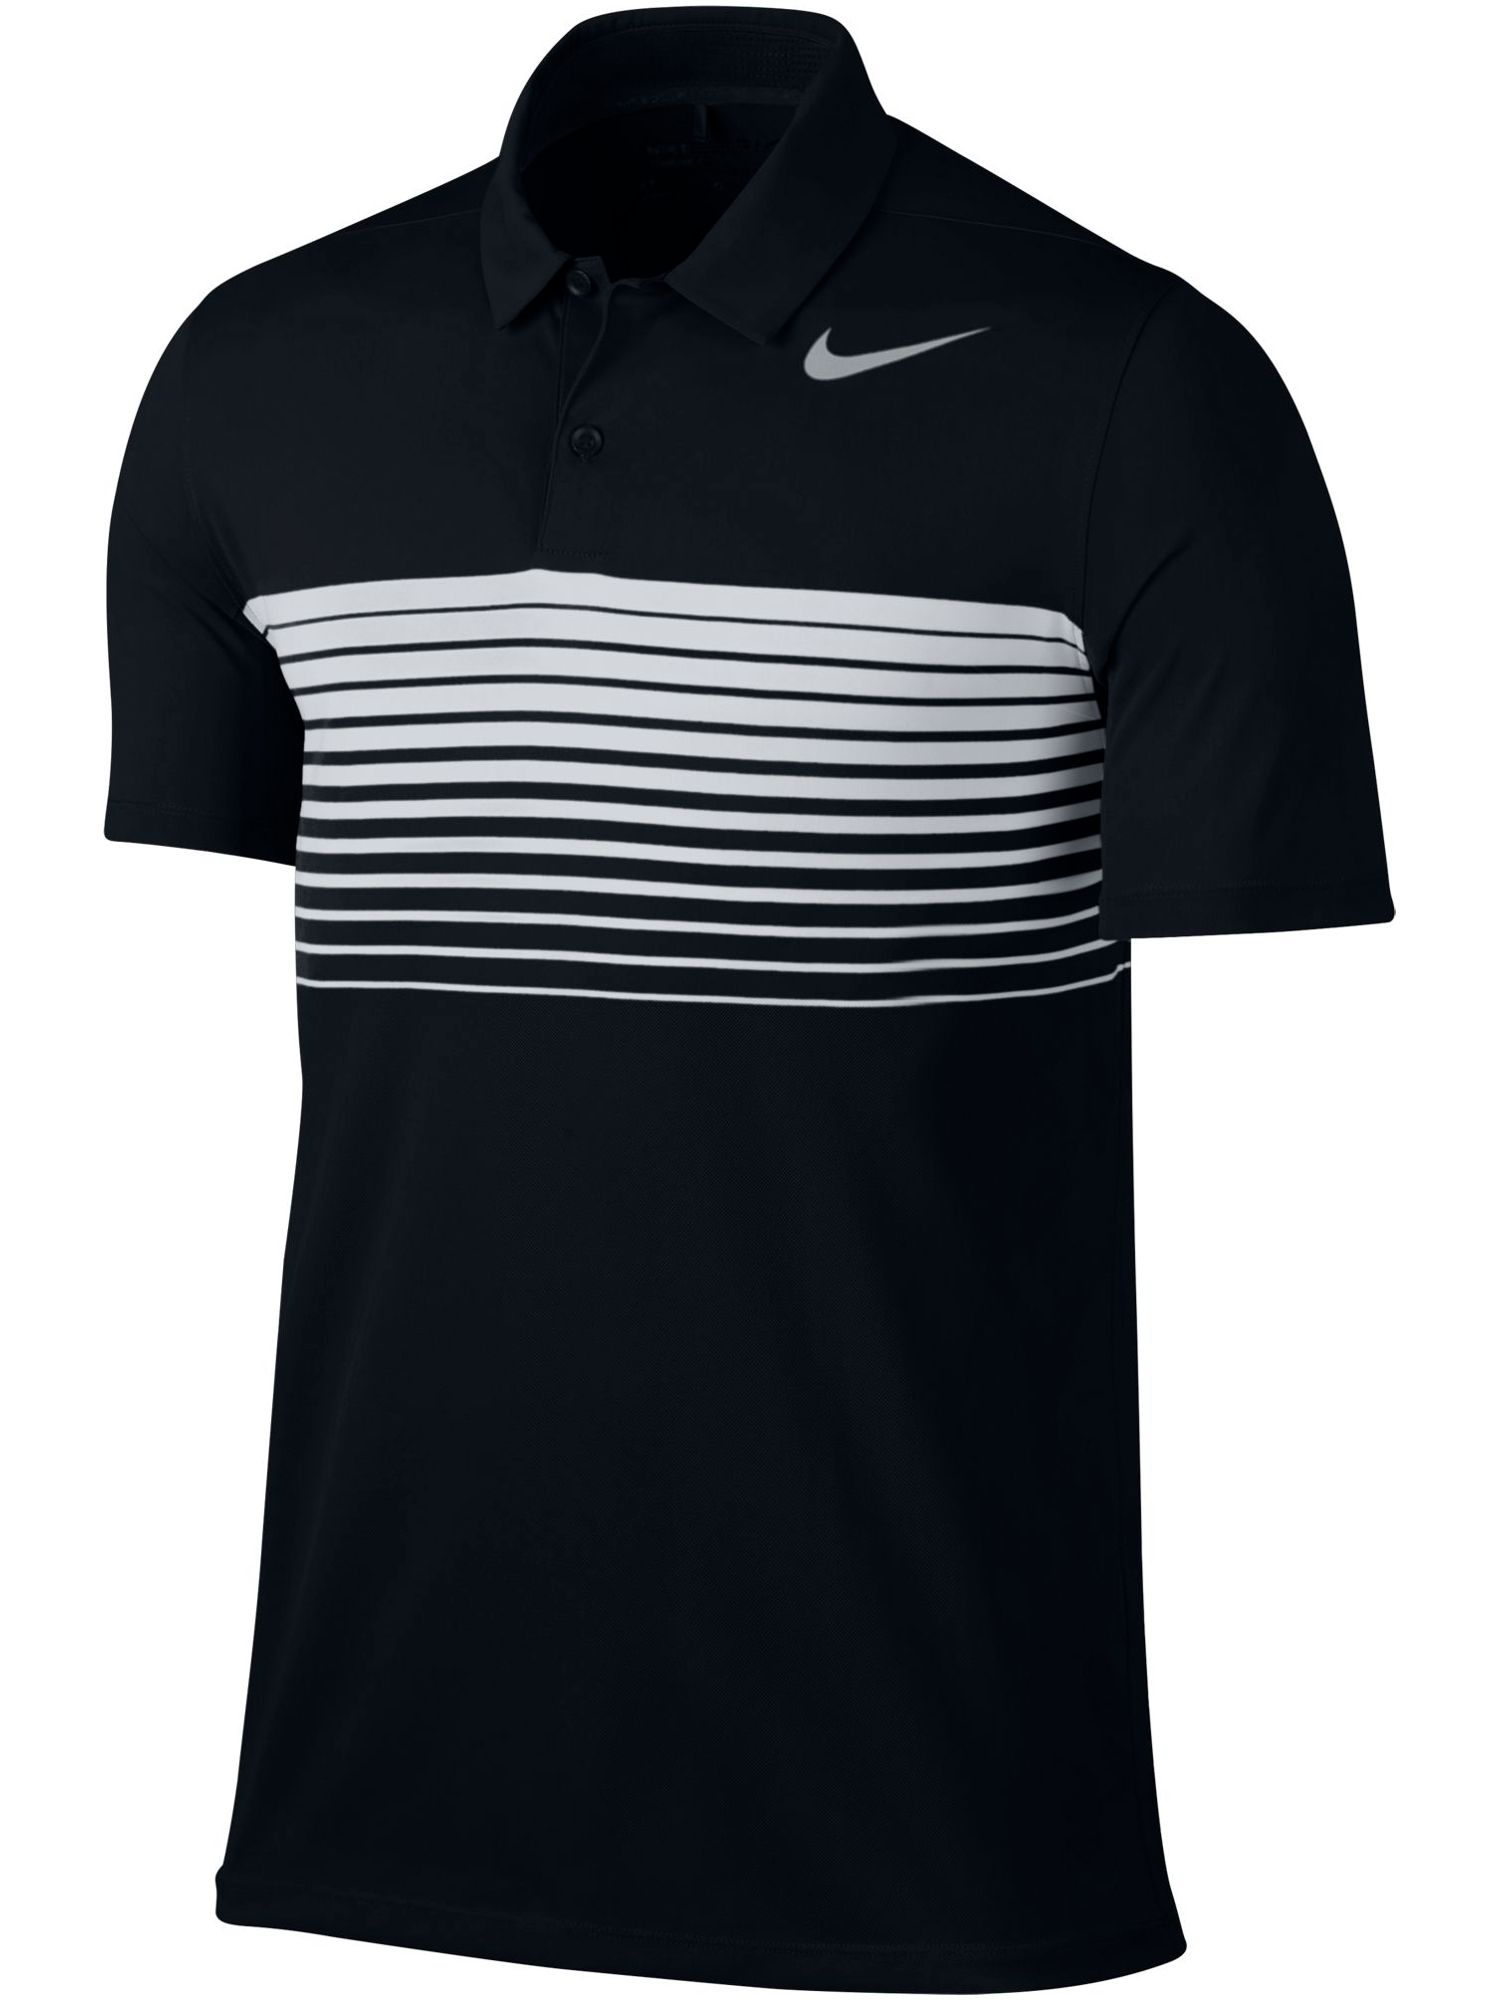 Men's Nike Mobility Speed Stripe Polo, Black